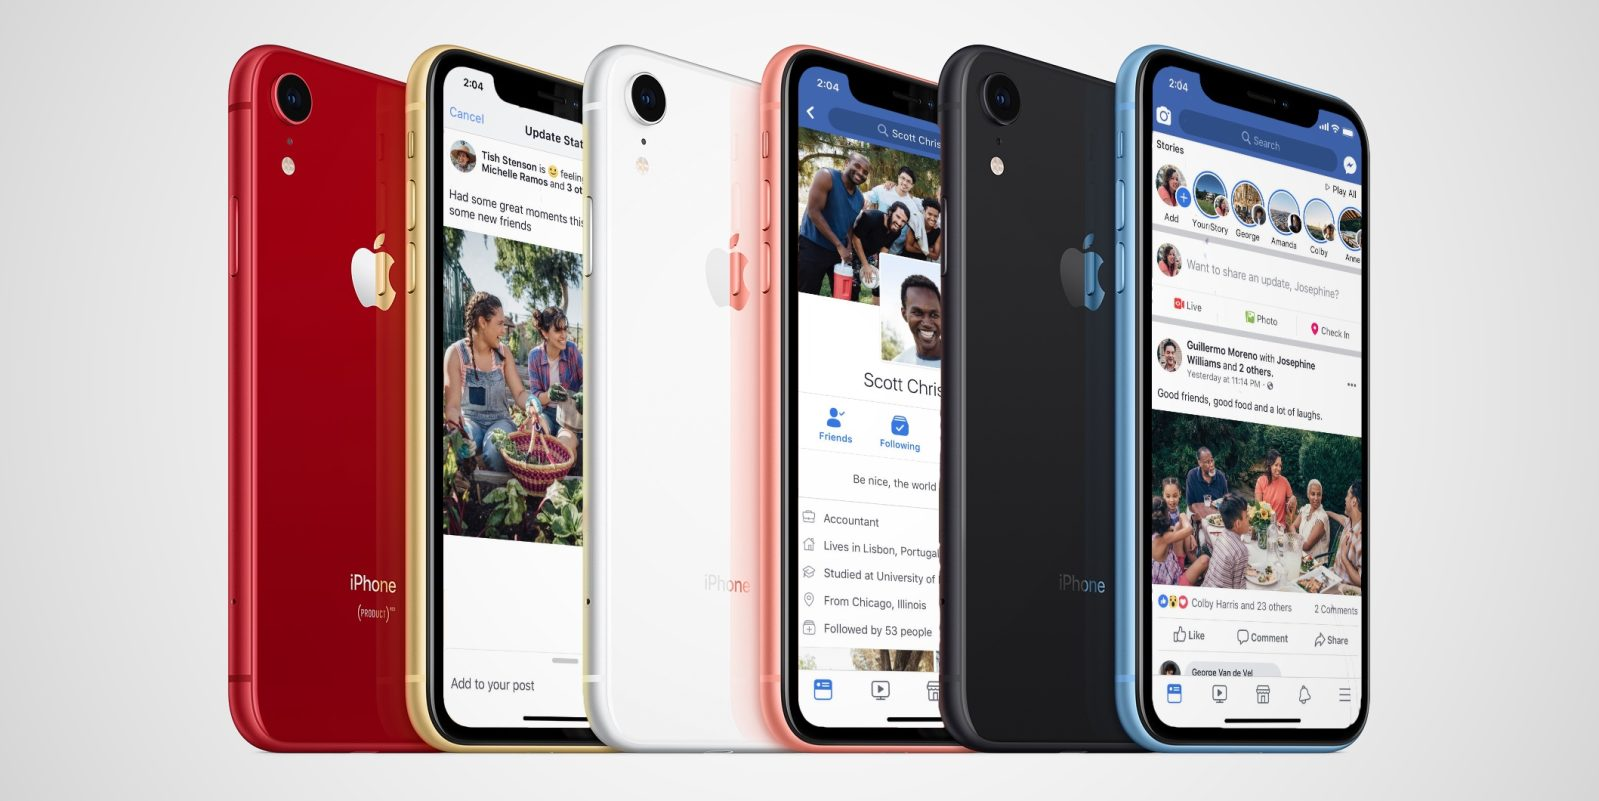 Facebook app update adds native screen resolution support for iPhone XS Max, iPhone XR and 2018 ...